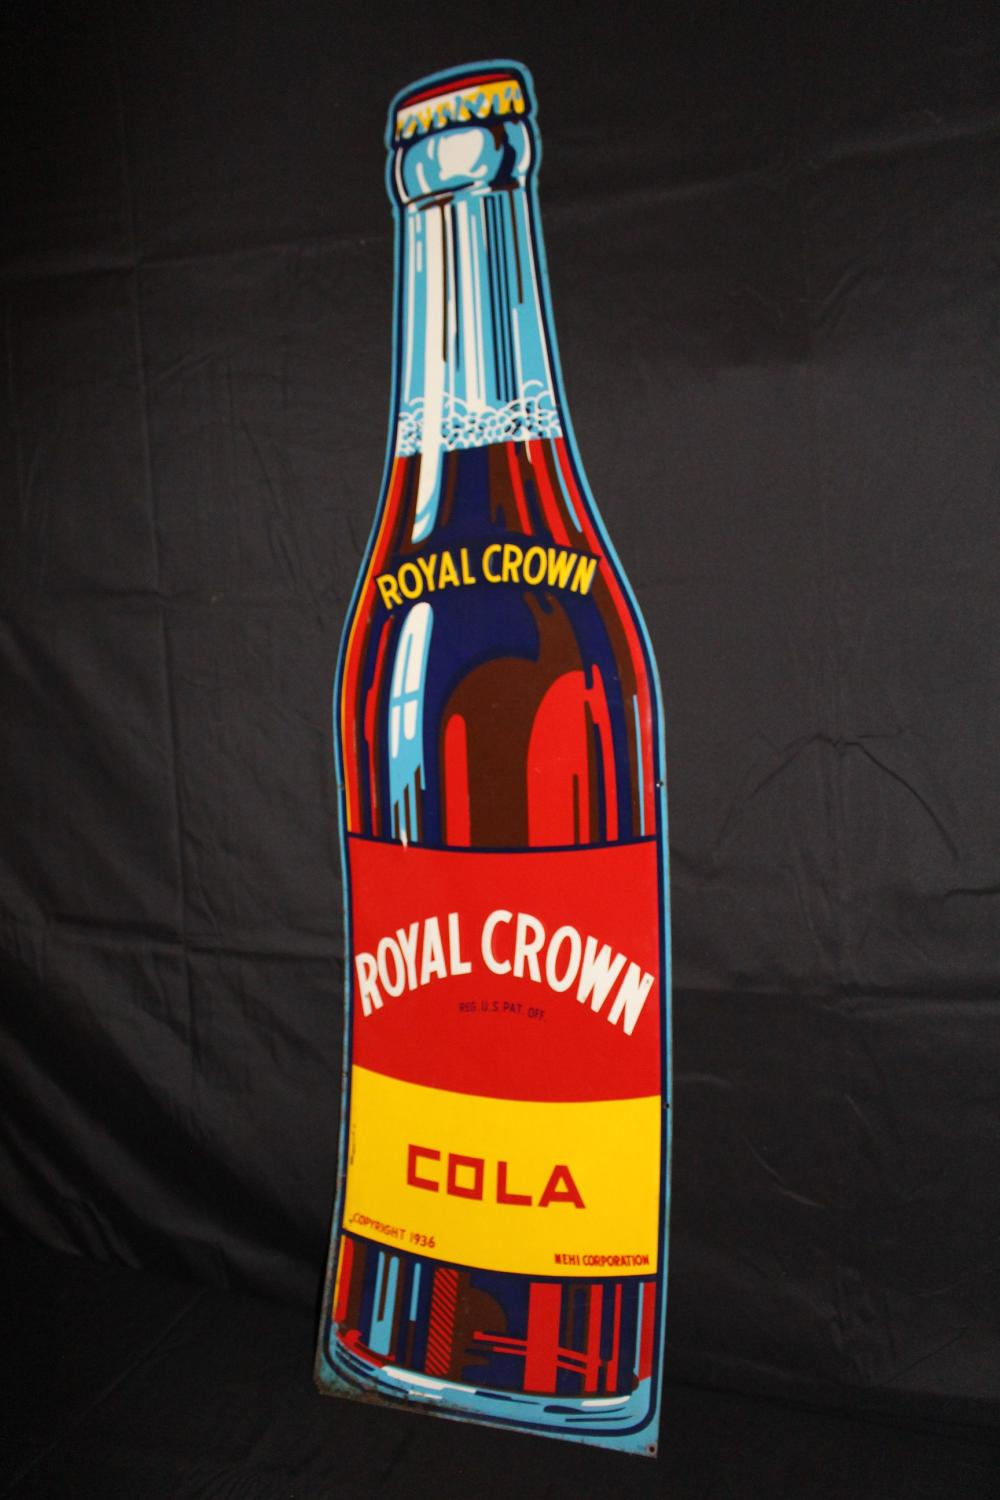 RC ROYAL CROWN COLA BOTTLE SIGN